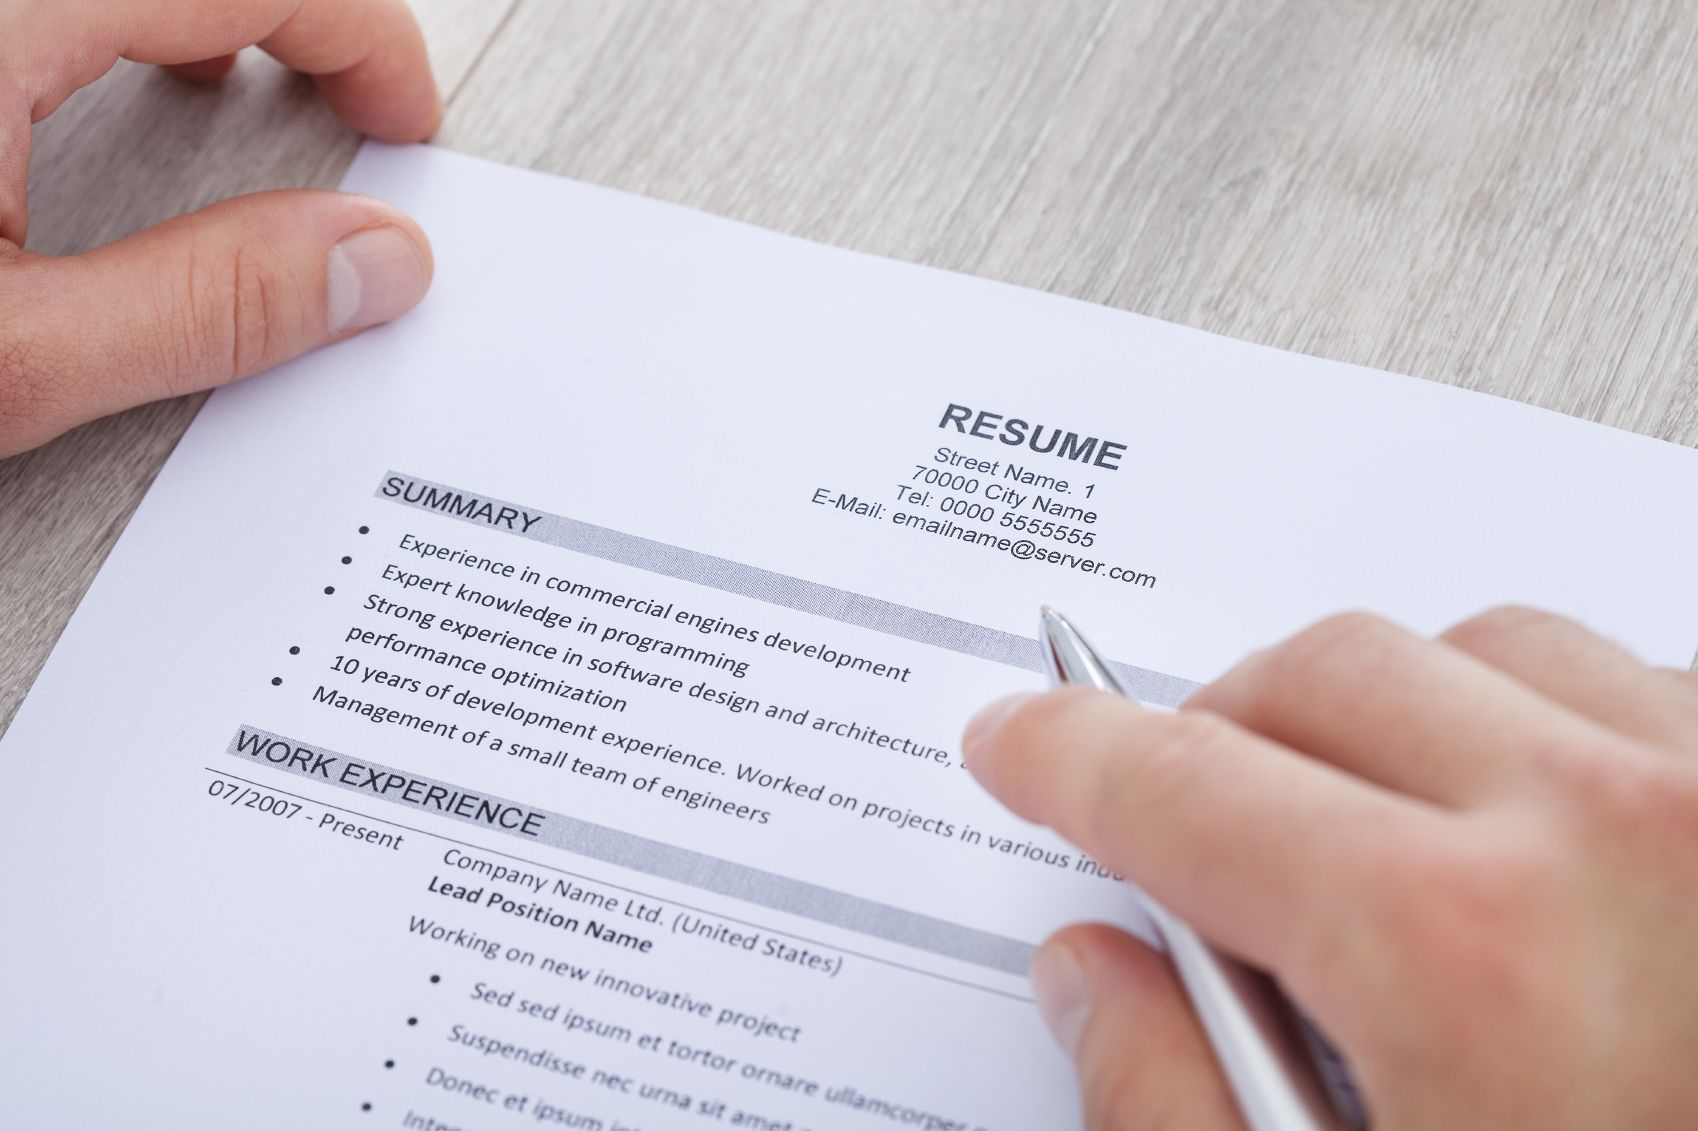 Whats A Good Wpm for A Resume - How to Write A Resume Summary Statement with Examples